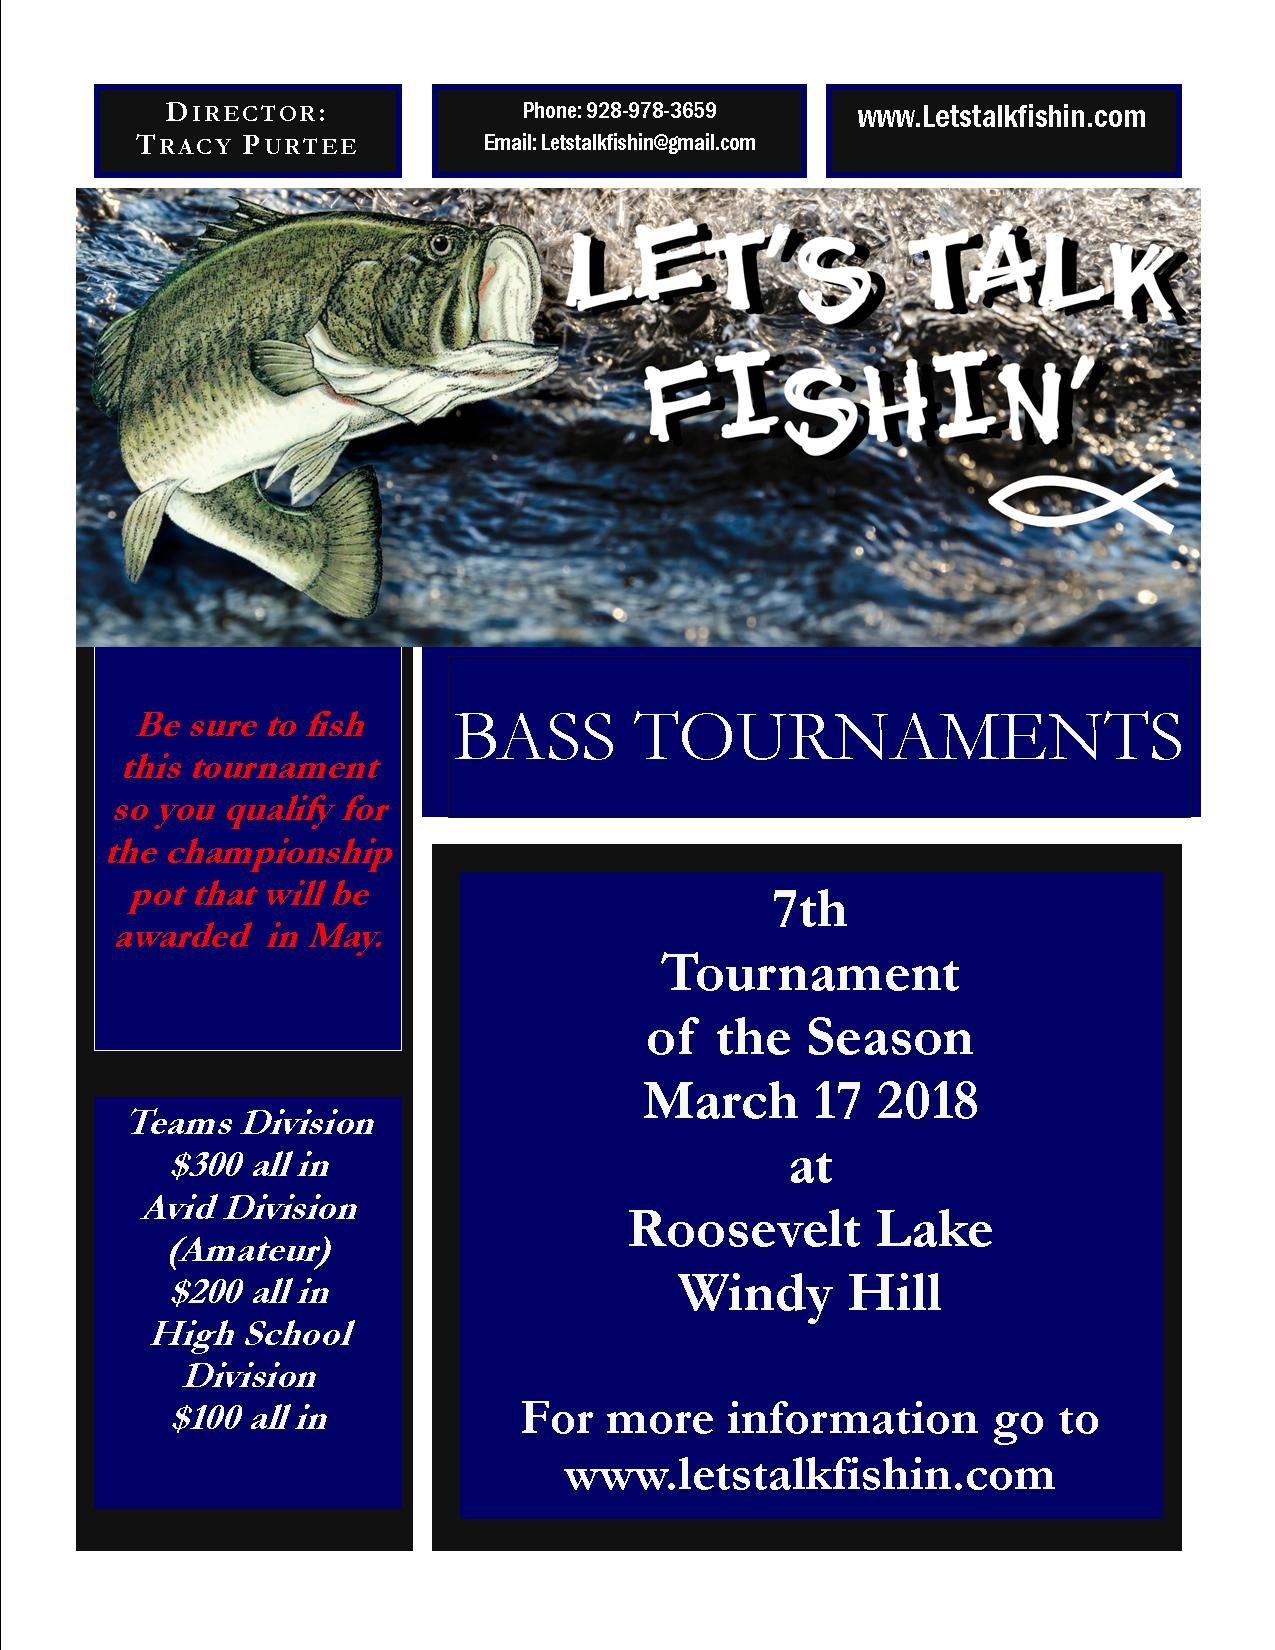 Click image for larger version  Name:7th Tournament.jpg Views:1852 Size:283.6 KB ID:96826